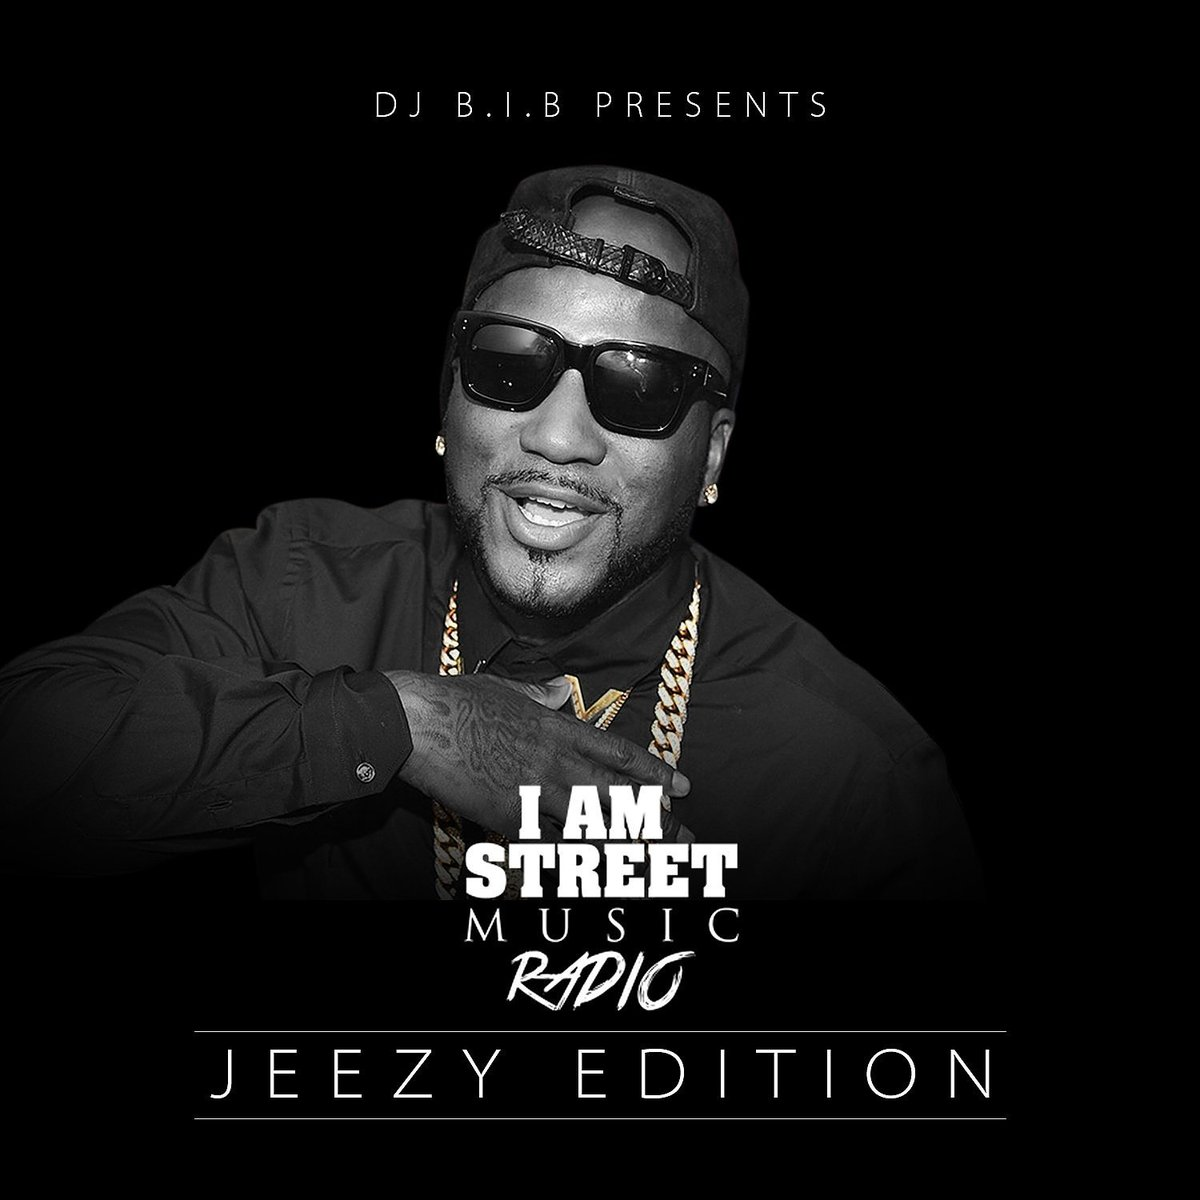 Download or stream #IamStreetMusicRadio #JeezyEdition now exclusively on @Spinrilla and the @Spinrilla #App http://ow.ly/uhML304YOtn